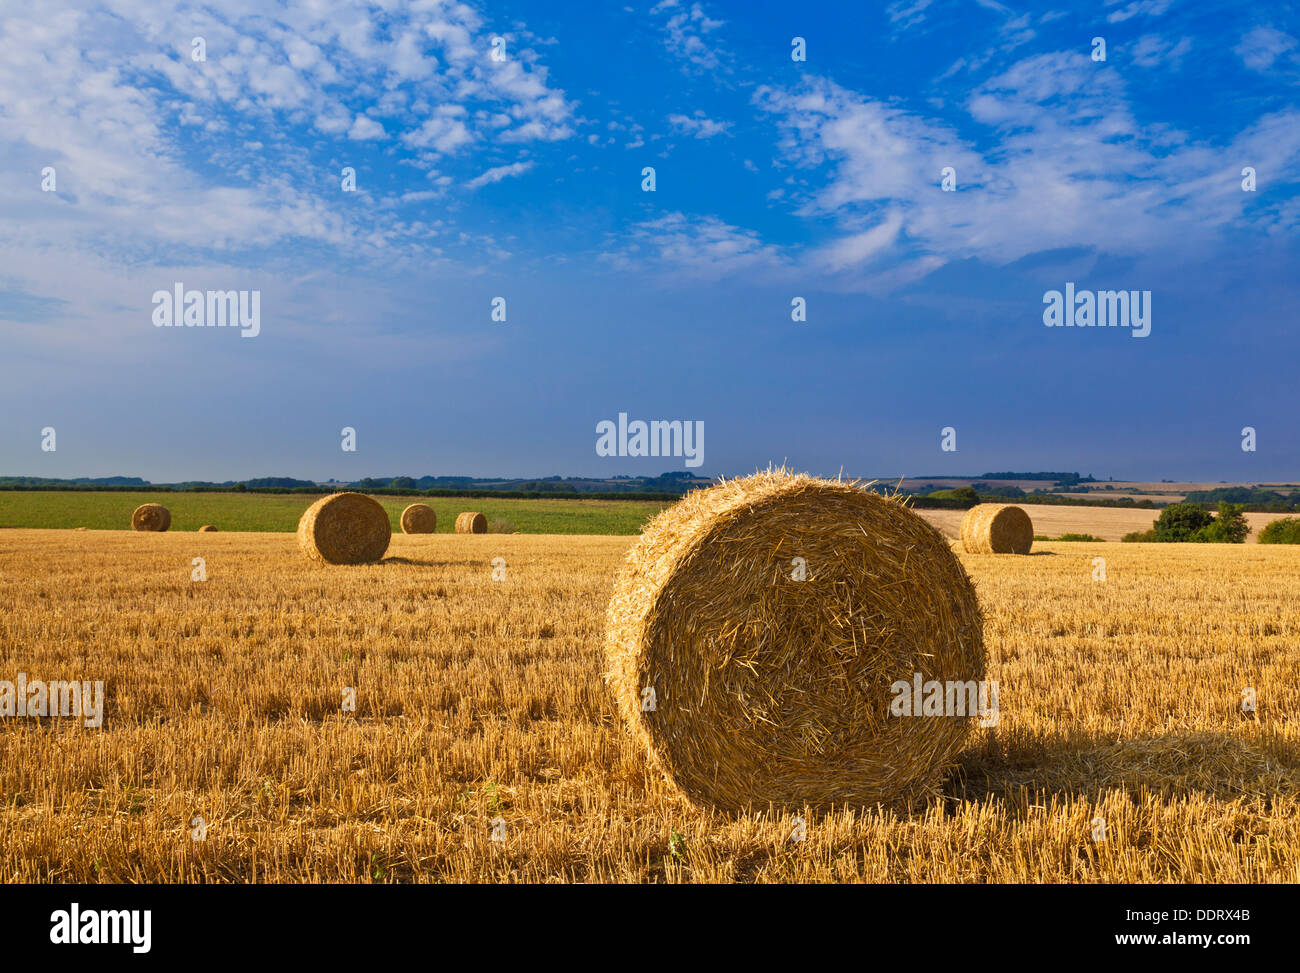 Wheat field harvested and straw bales made Lincolnshire Wolds England UK GB EU Europe - Stock Image